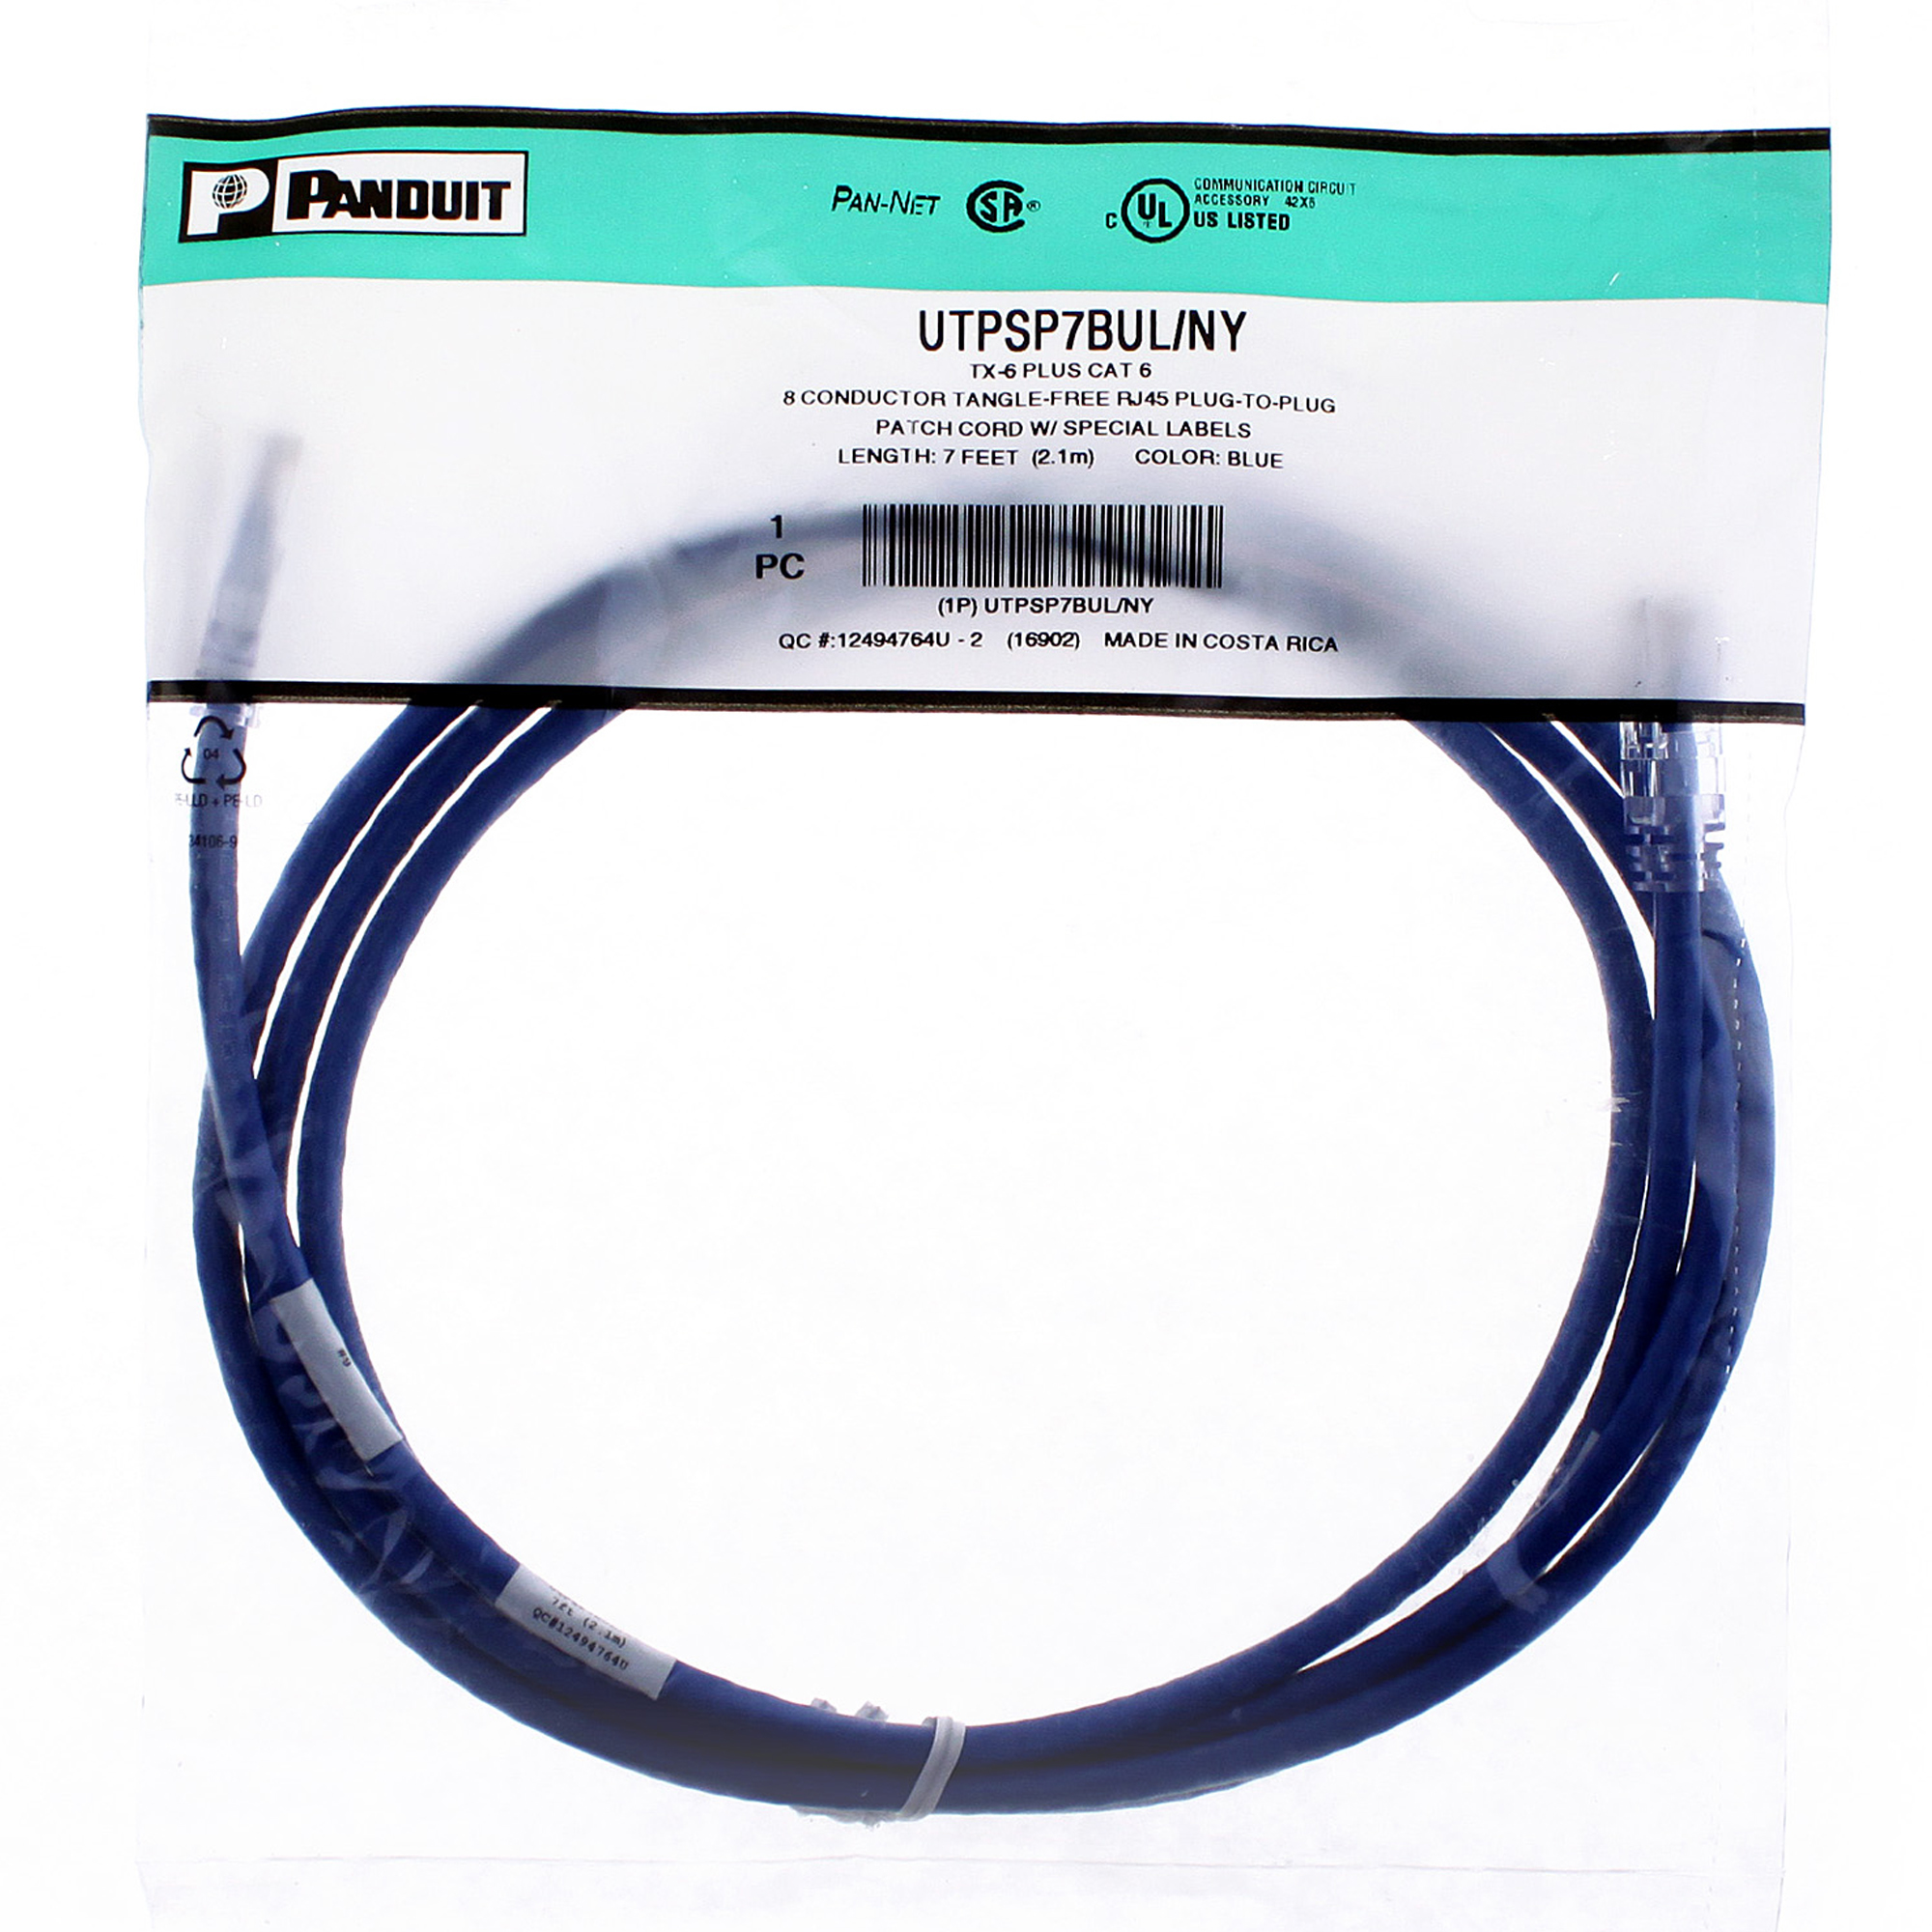 Panduit Utpsp7bul Ny Tx6 Plus Cat 6 8 Conductor Tangle Free Rj45 The Wiring Of Conductors To Has Also Been Established By We Gladly Accept Payments Paypal Visa Mastercard Discover American Express